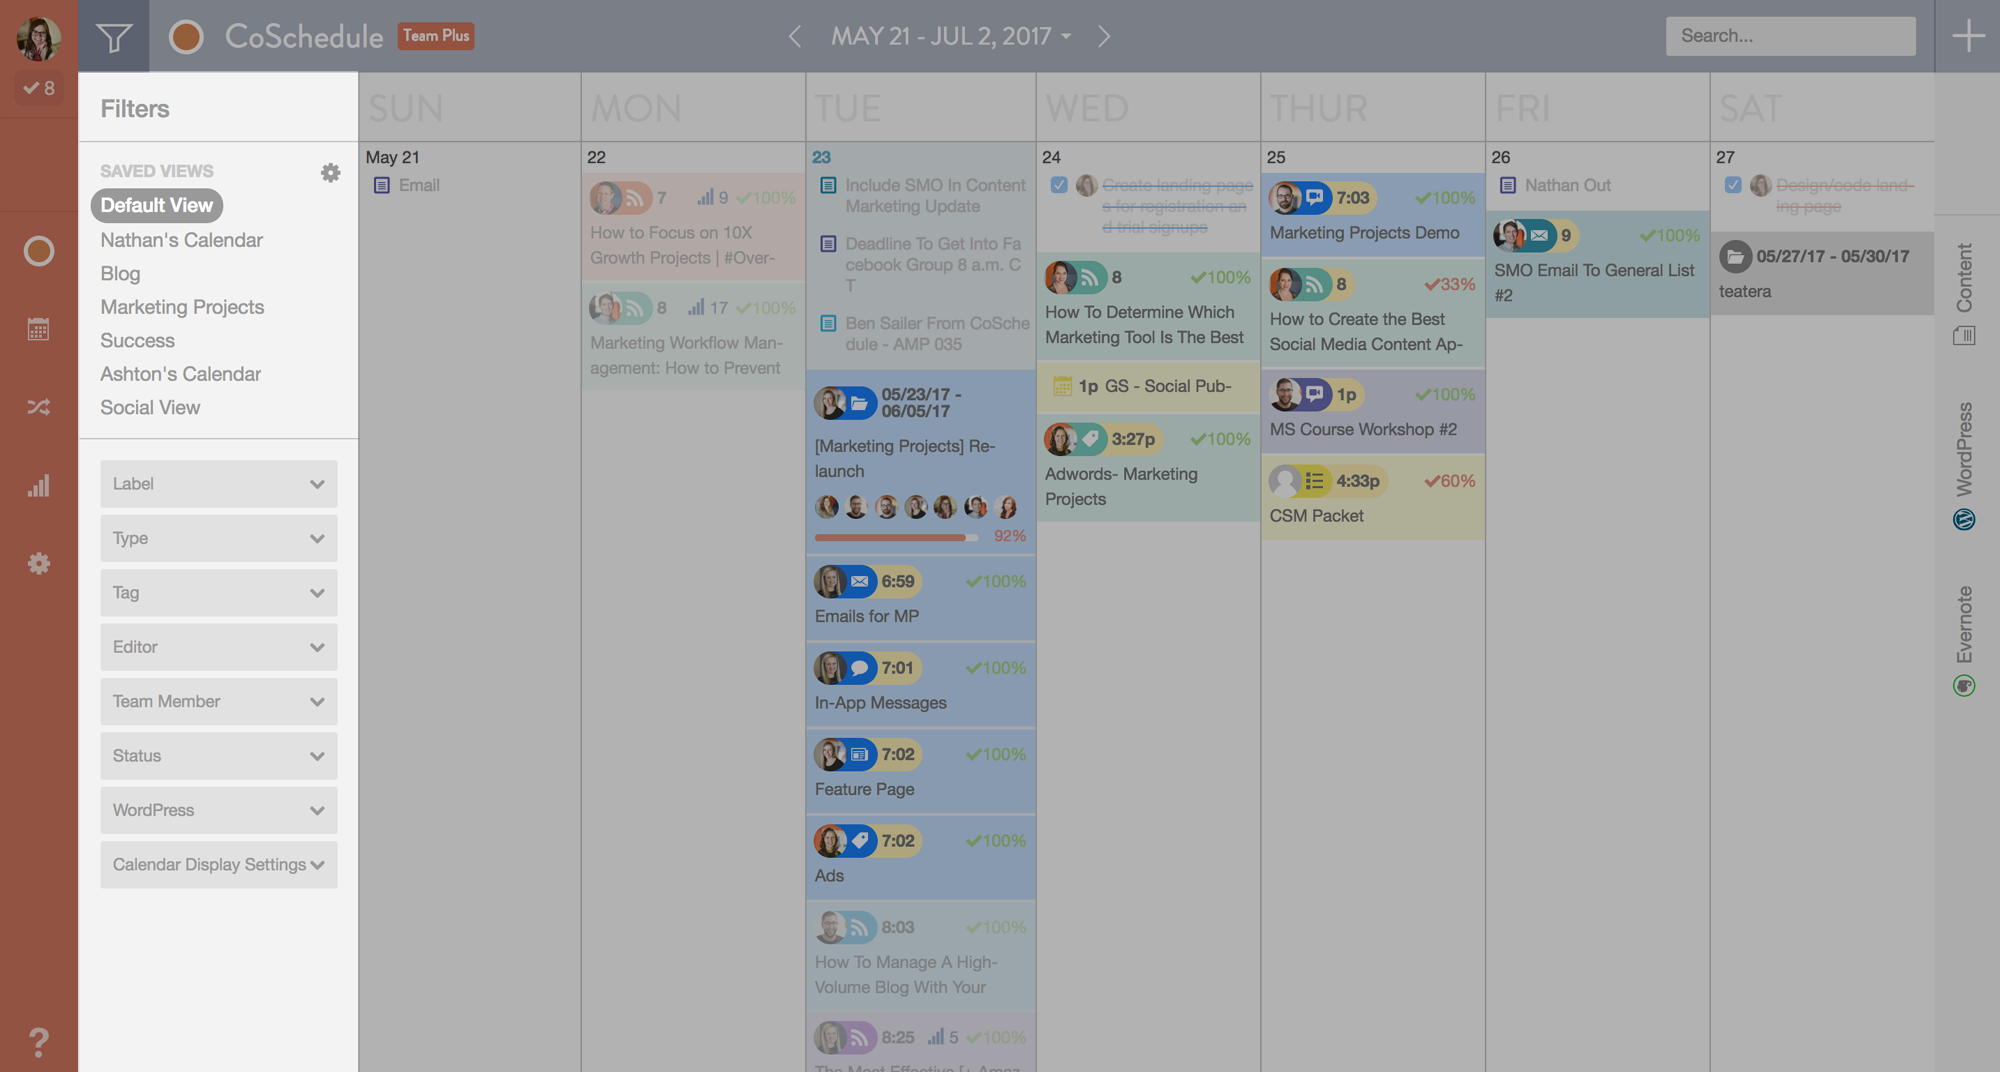 CoSchedule_Filters.png